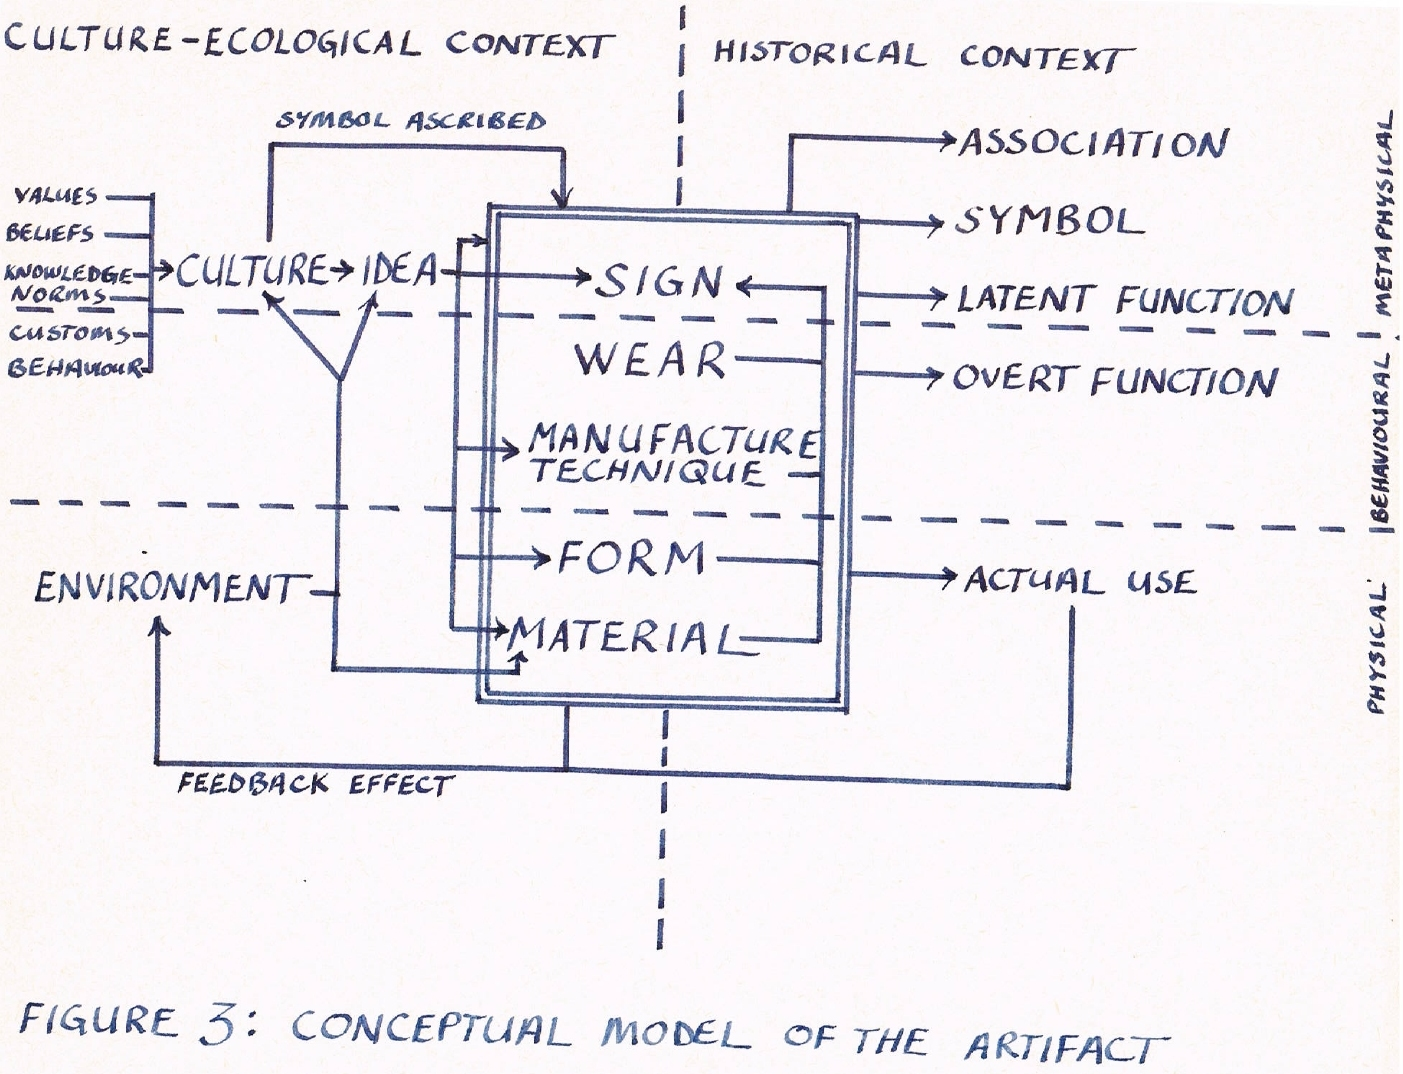 Emerging Conceptual Object Model, 1982